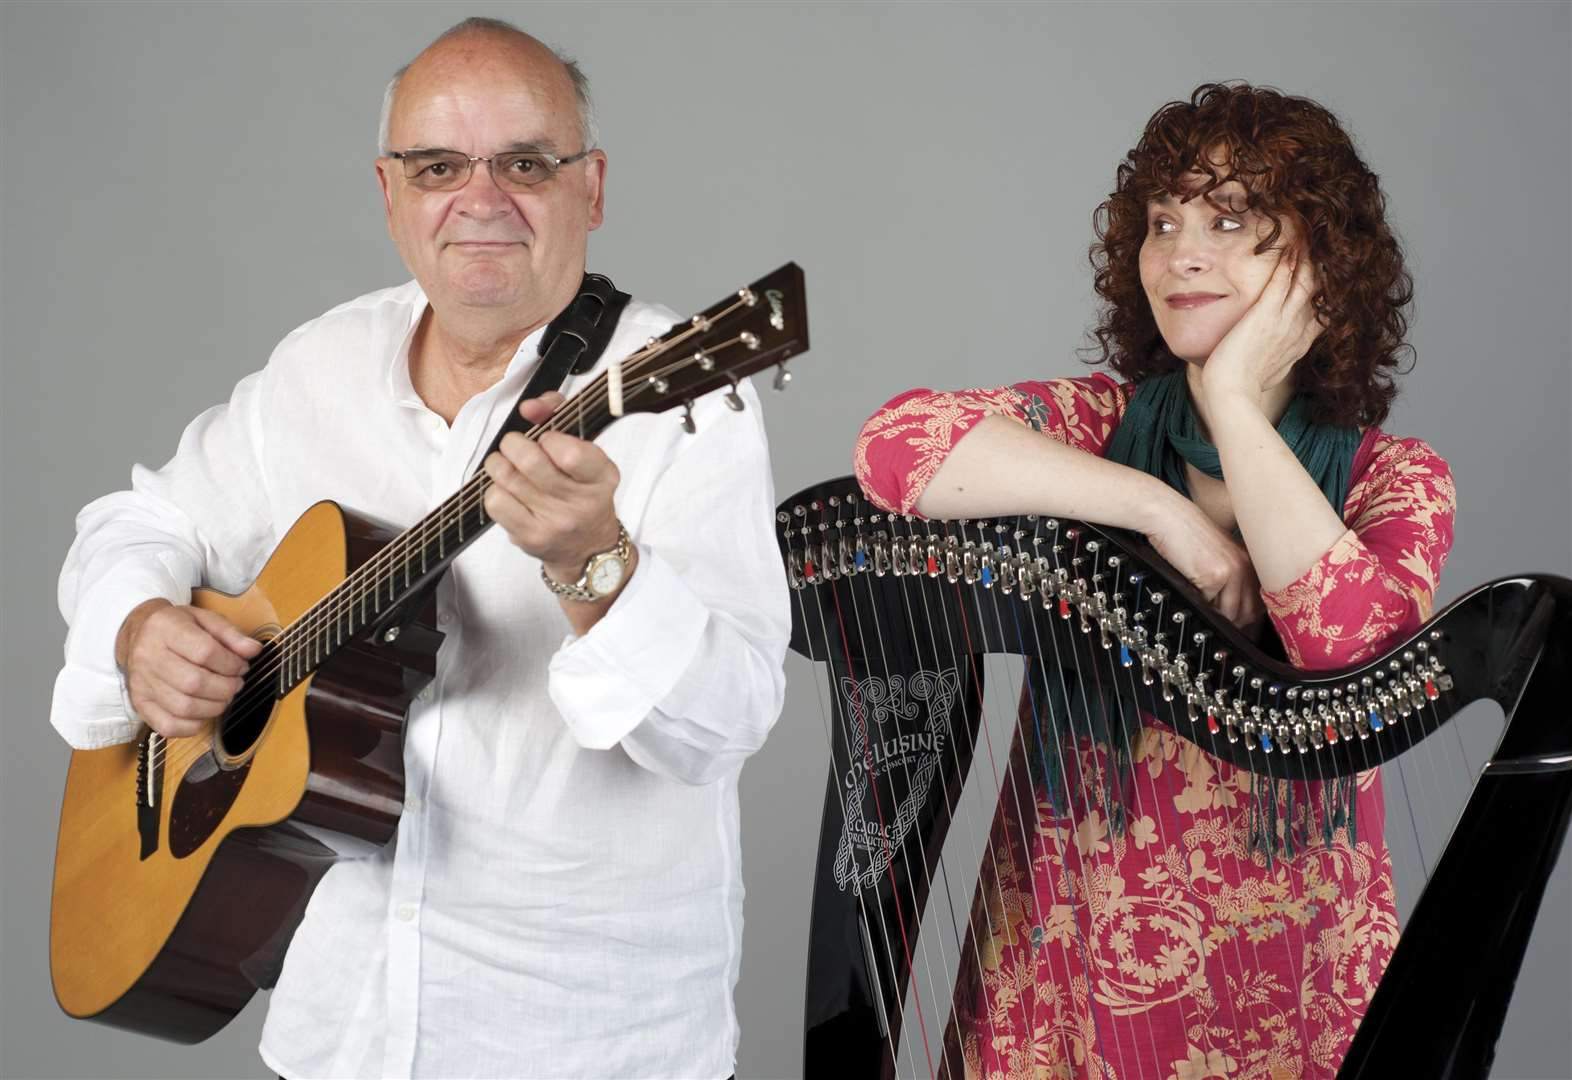 CONCERT PREVIEW: Festive delights with harpist and guitarist in Long Sutton